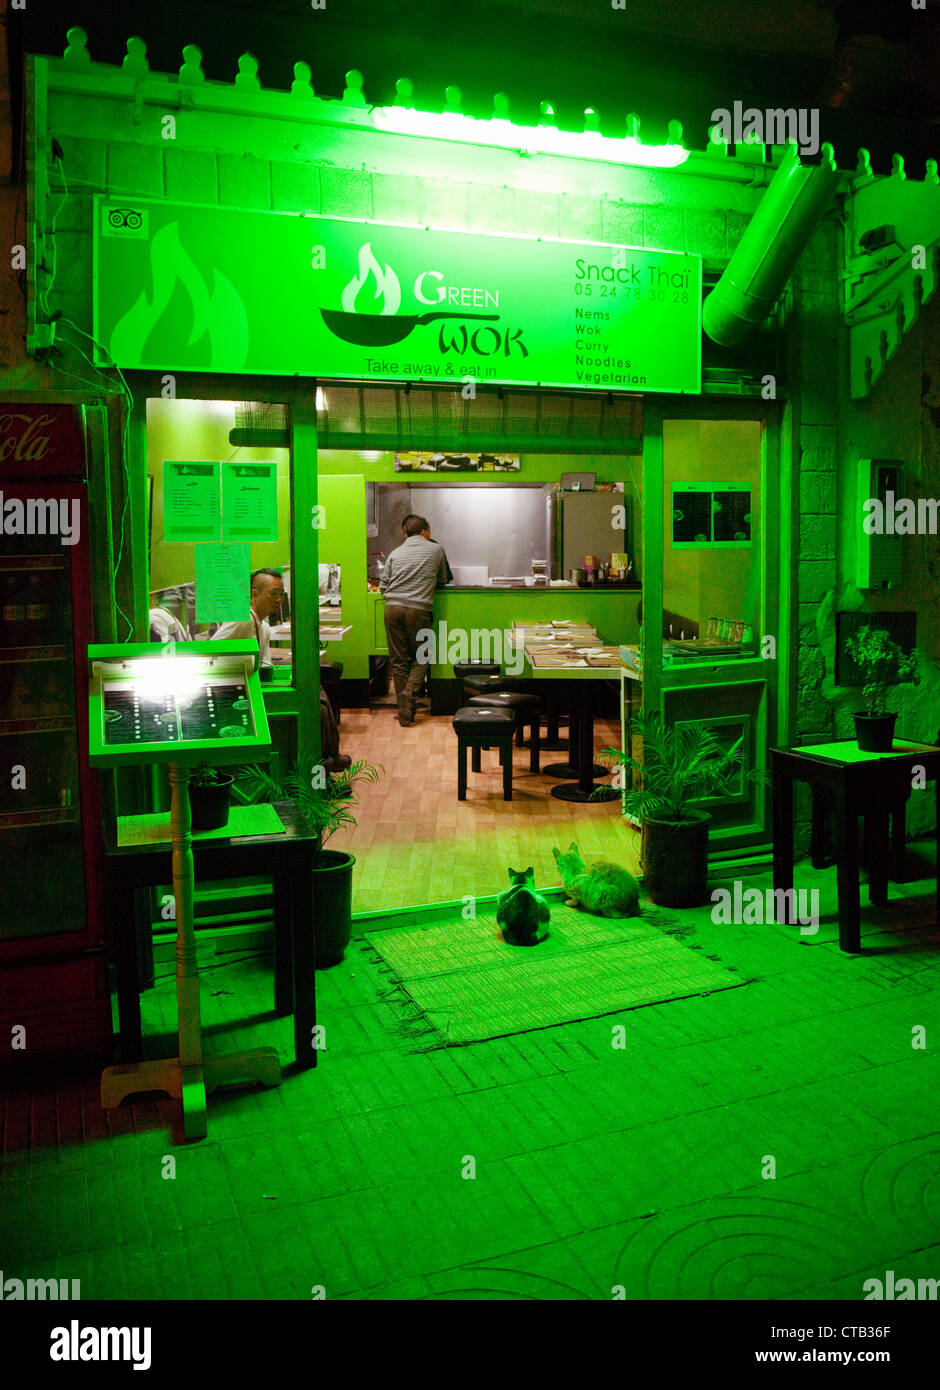 the-green-wok-chinese-restaurant-the-medina-essaouira-morocco-africa-CTB36F.jpg